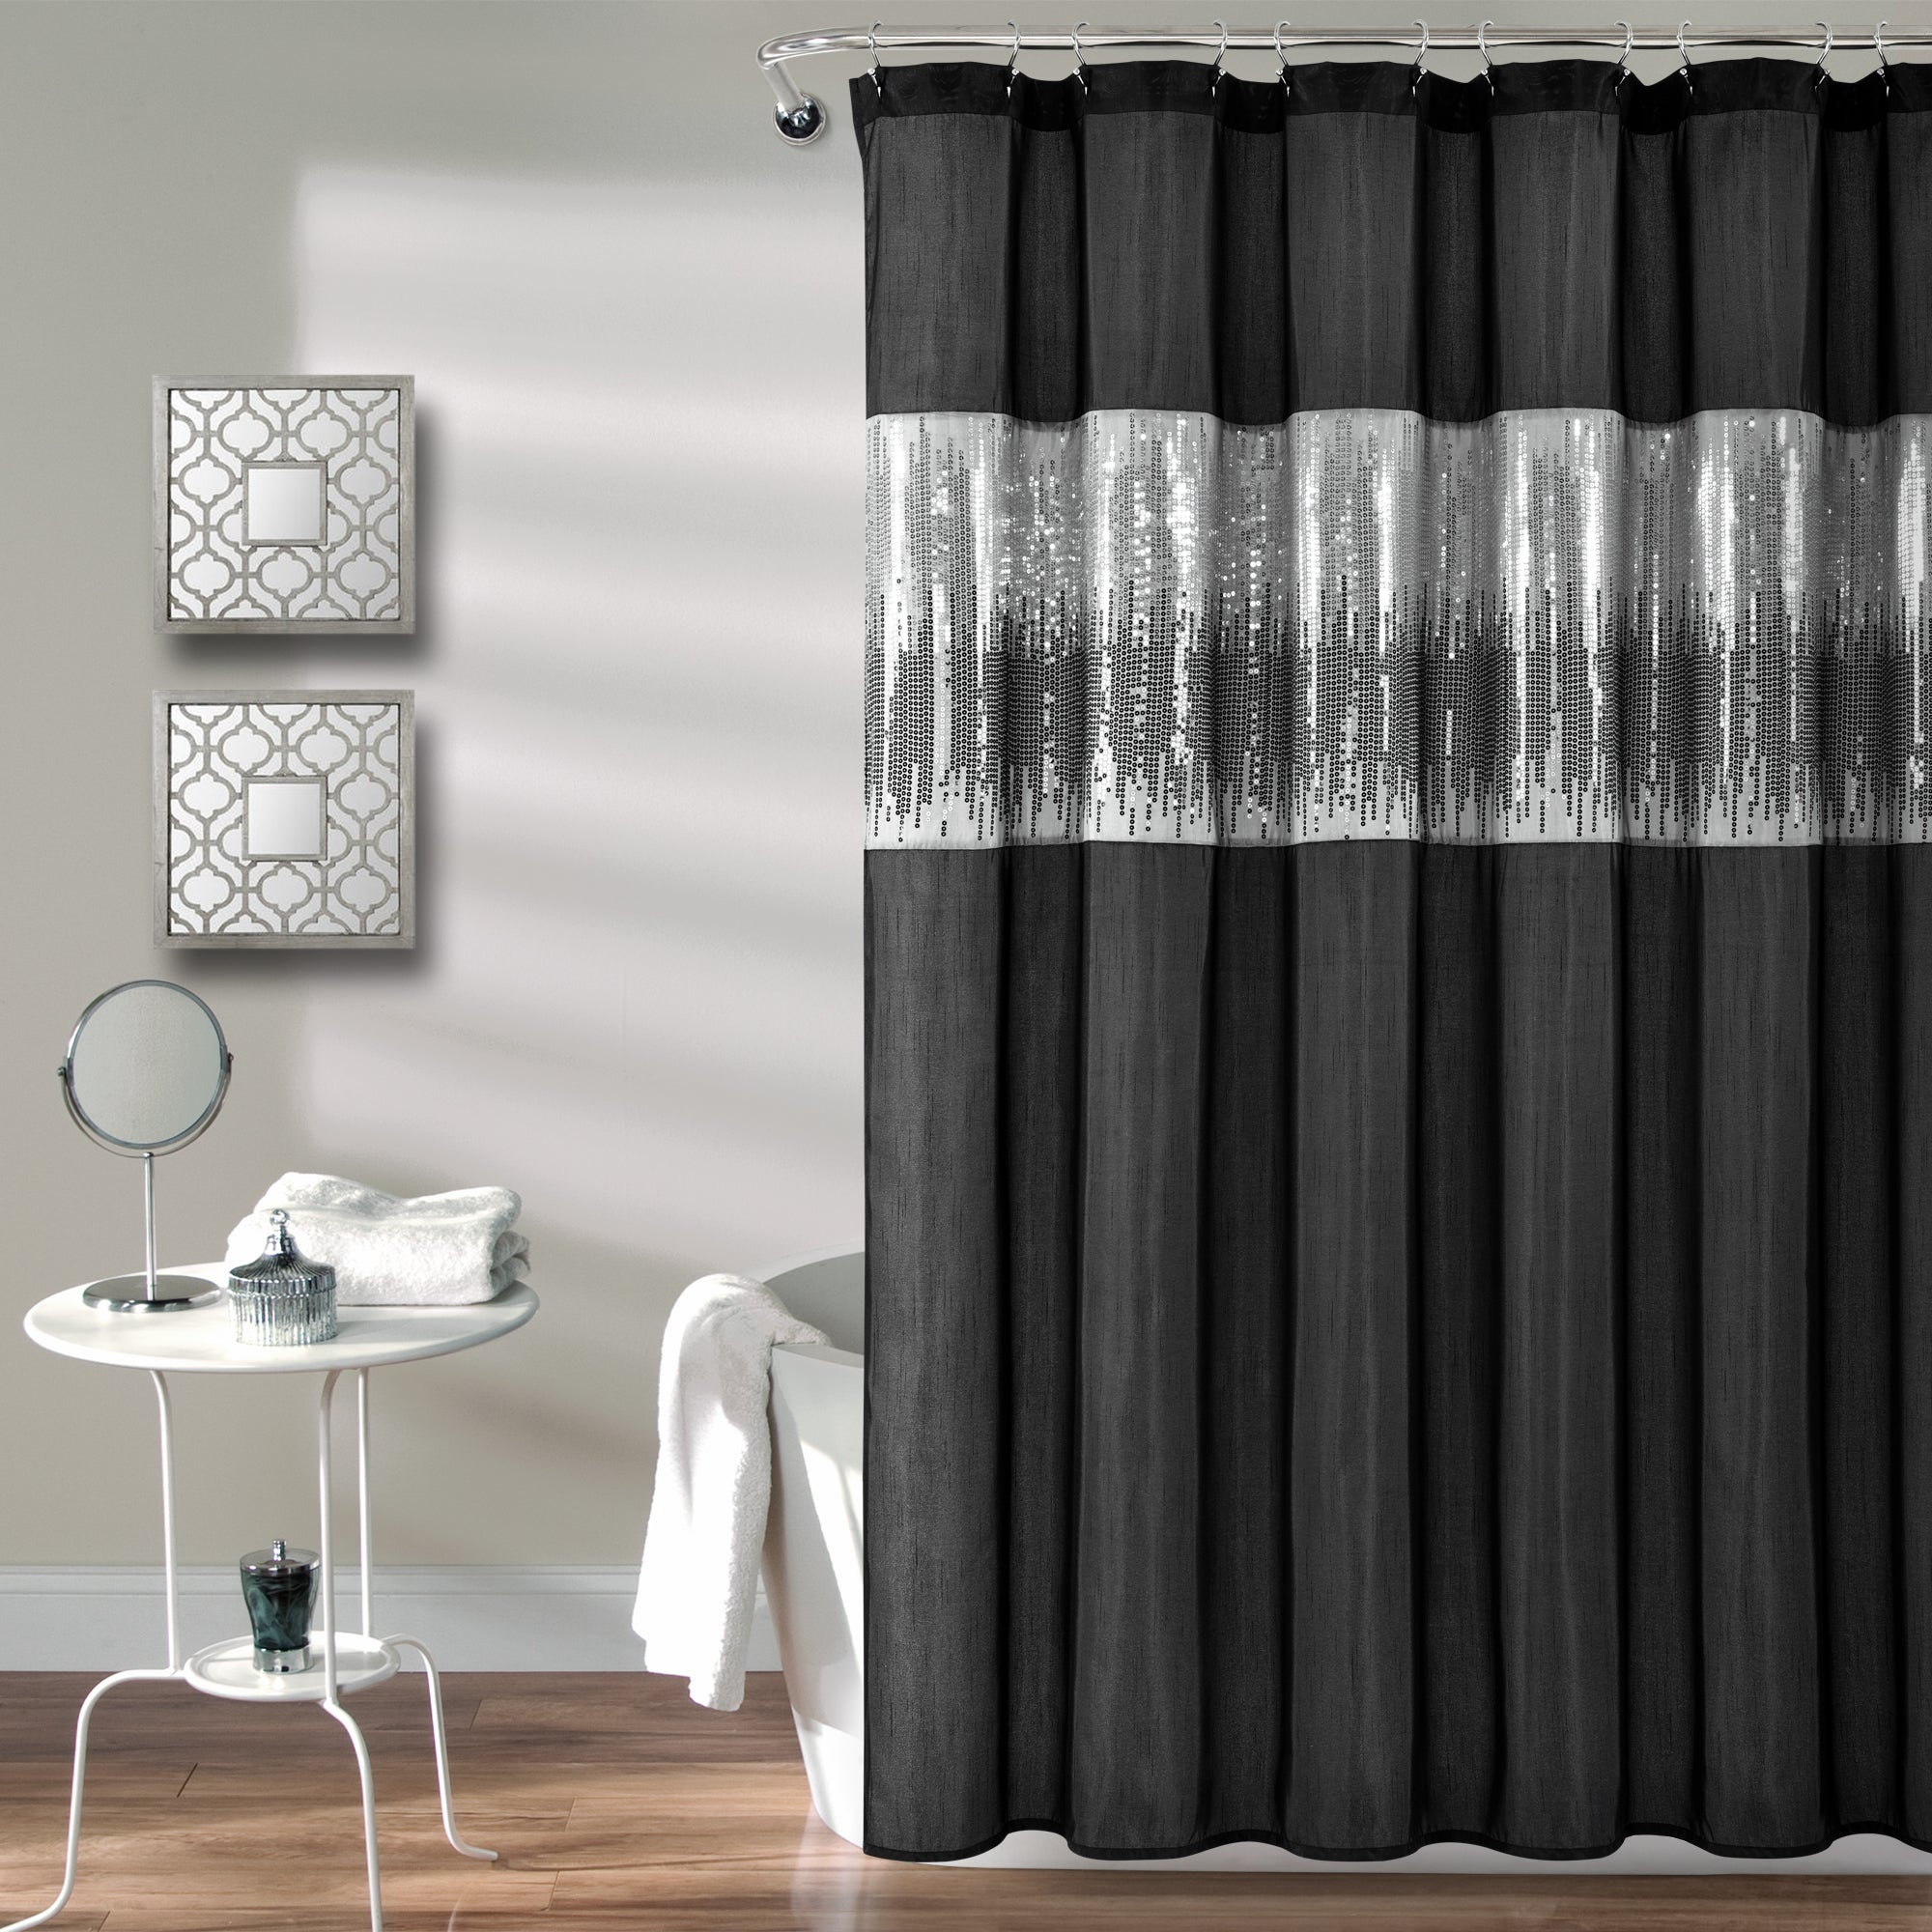 Night Sky Shower Curtain Lush Decor Www Lushdecor Com Lushdecor